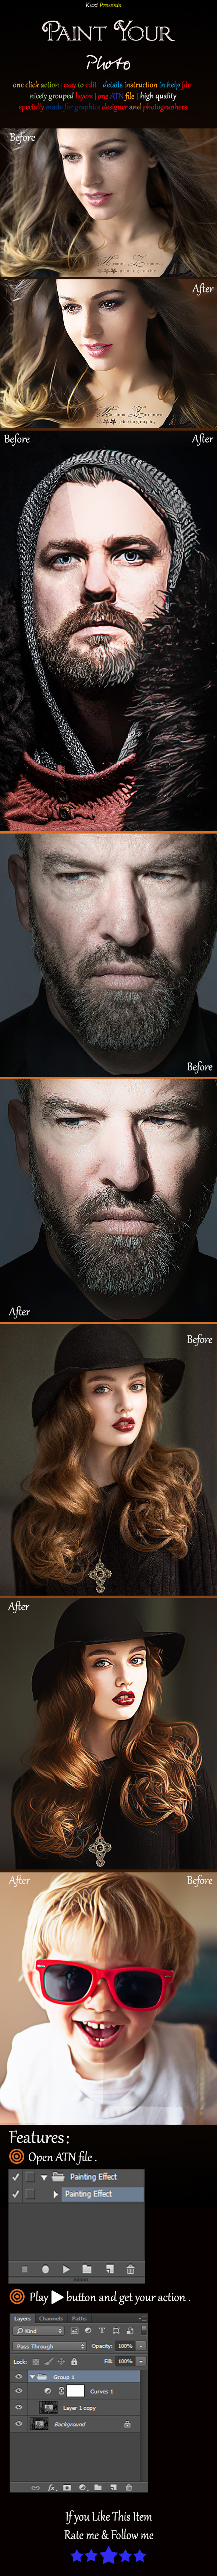 GraphicRiver Paint Your Photo 10353578